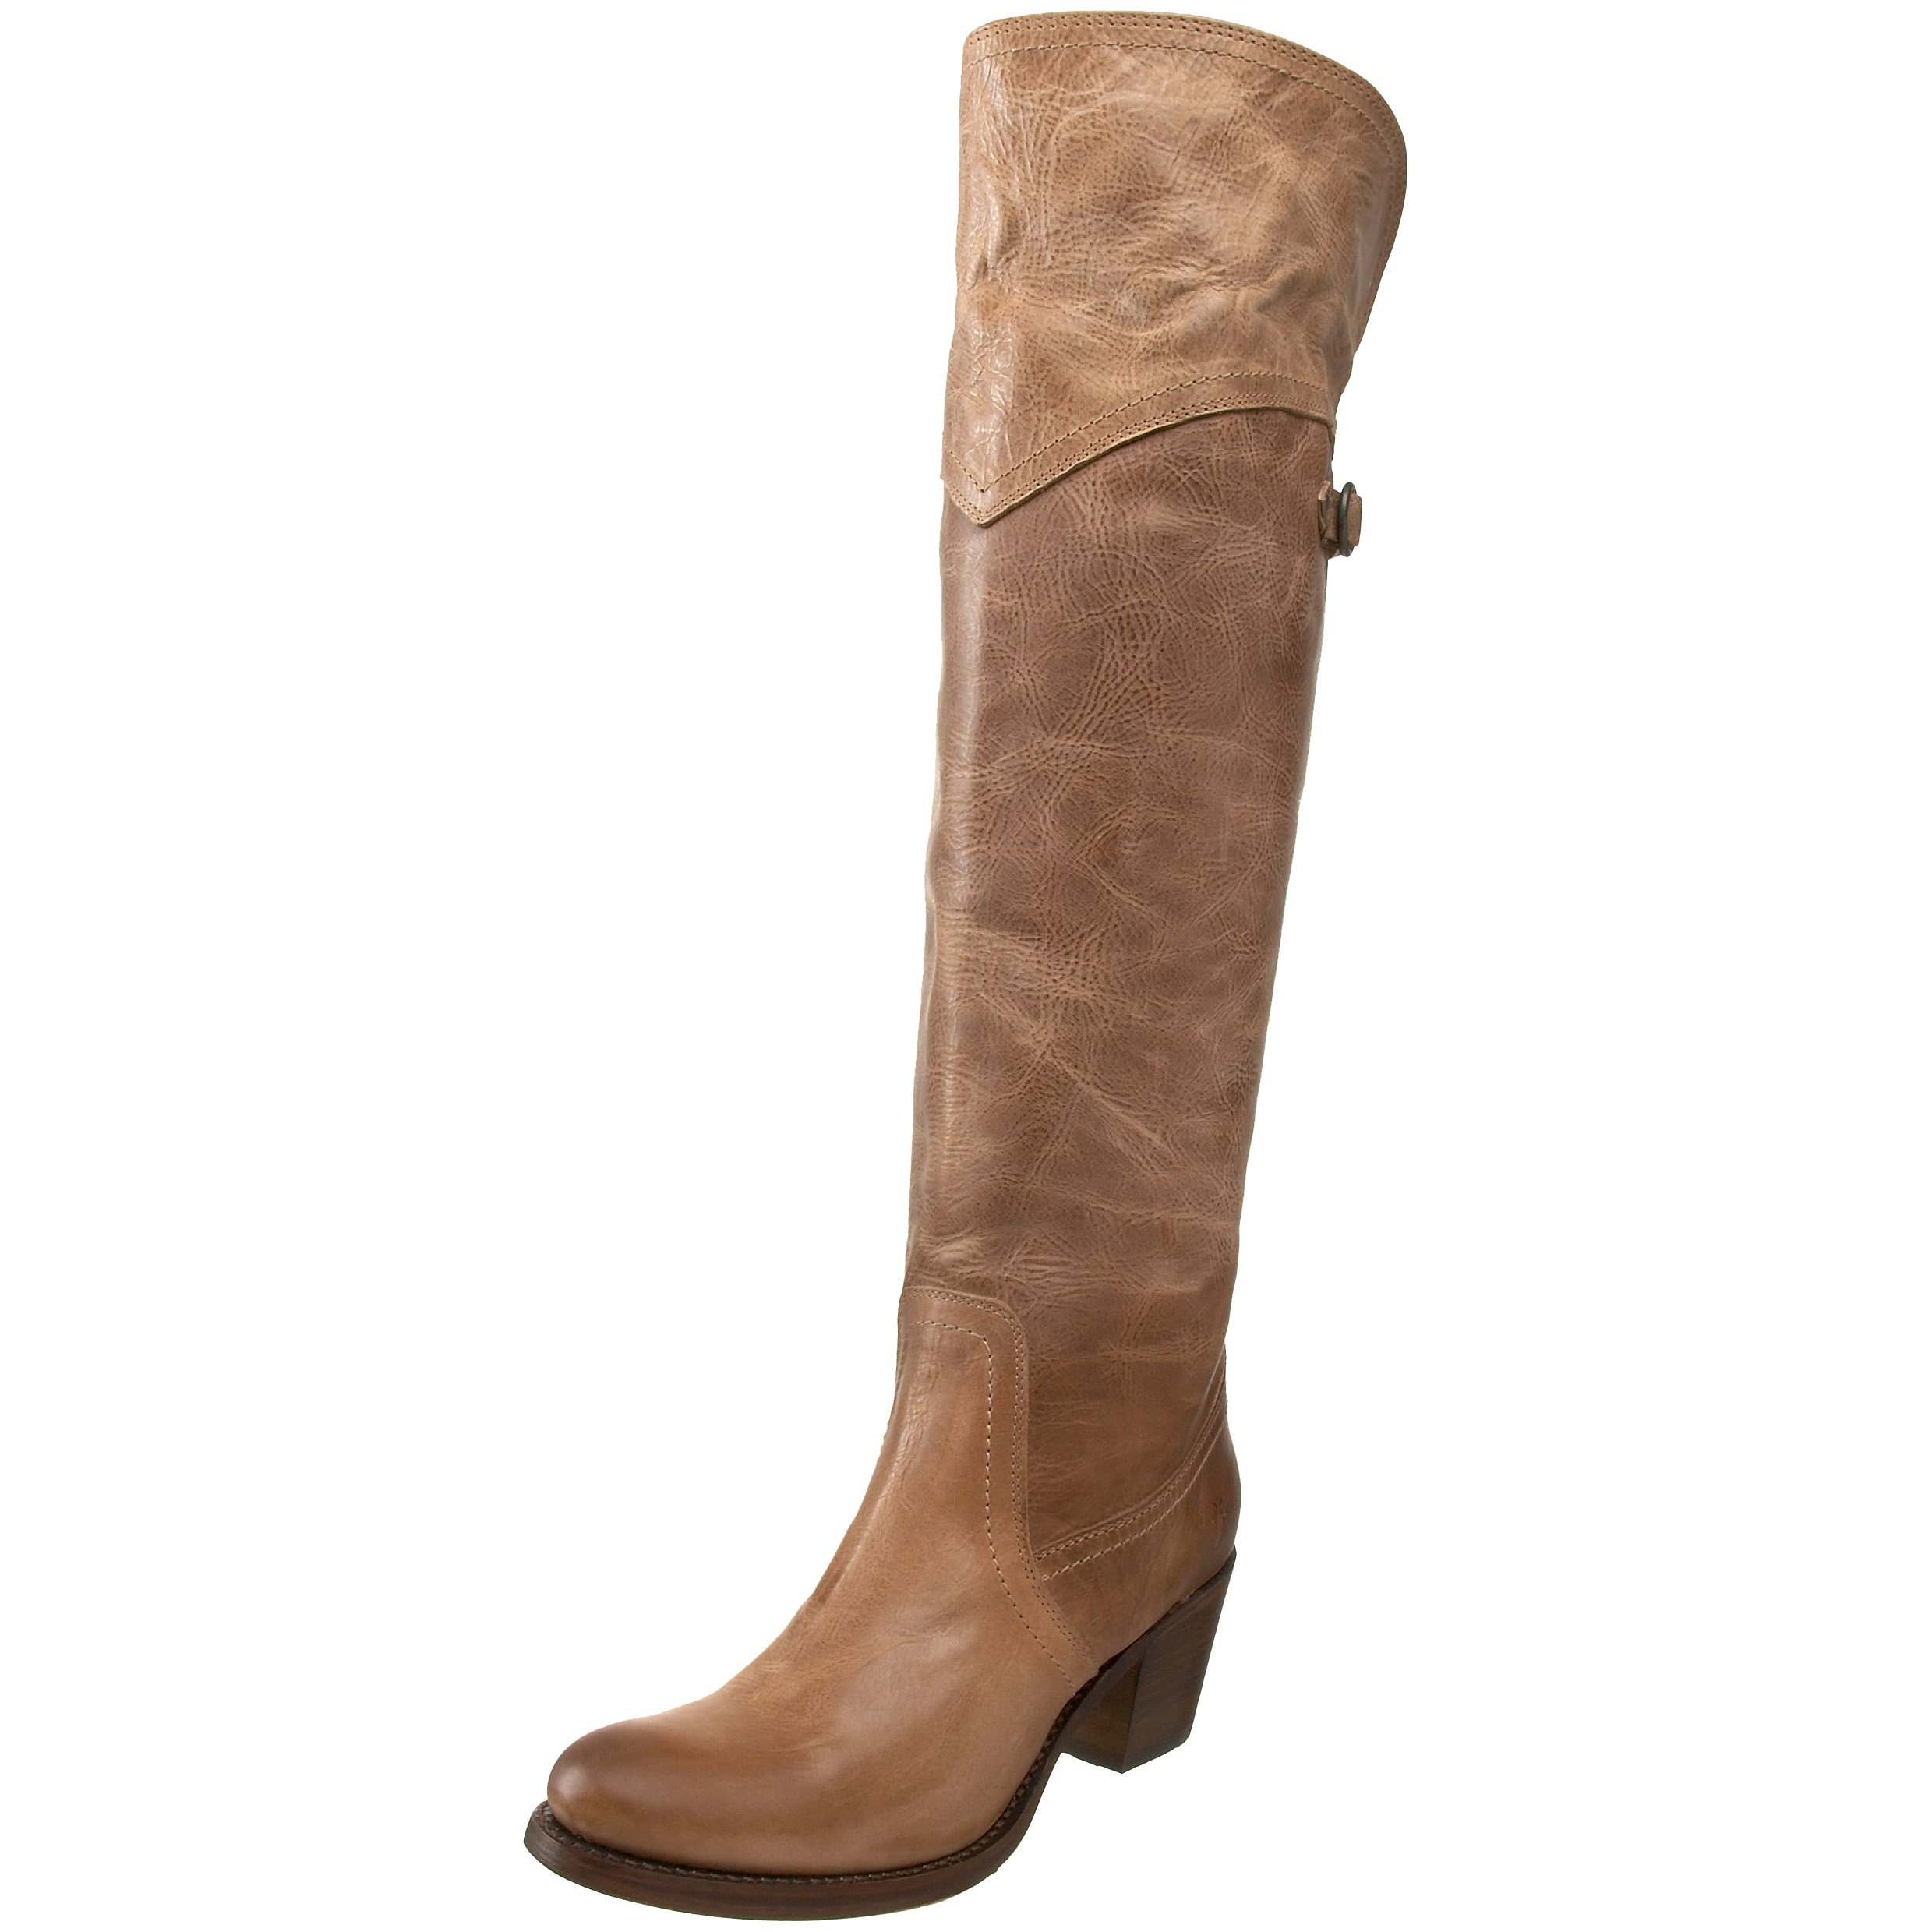 FRYE Women's Jane Tall Cuff Boot, Tan Burnished Antique Leather, 6 M US